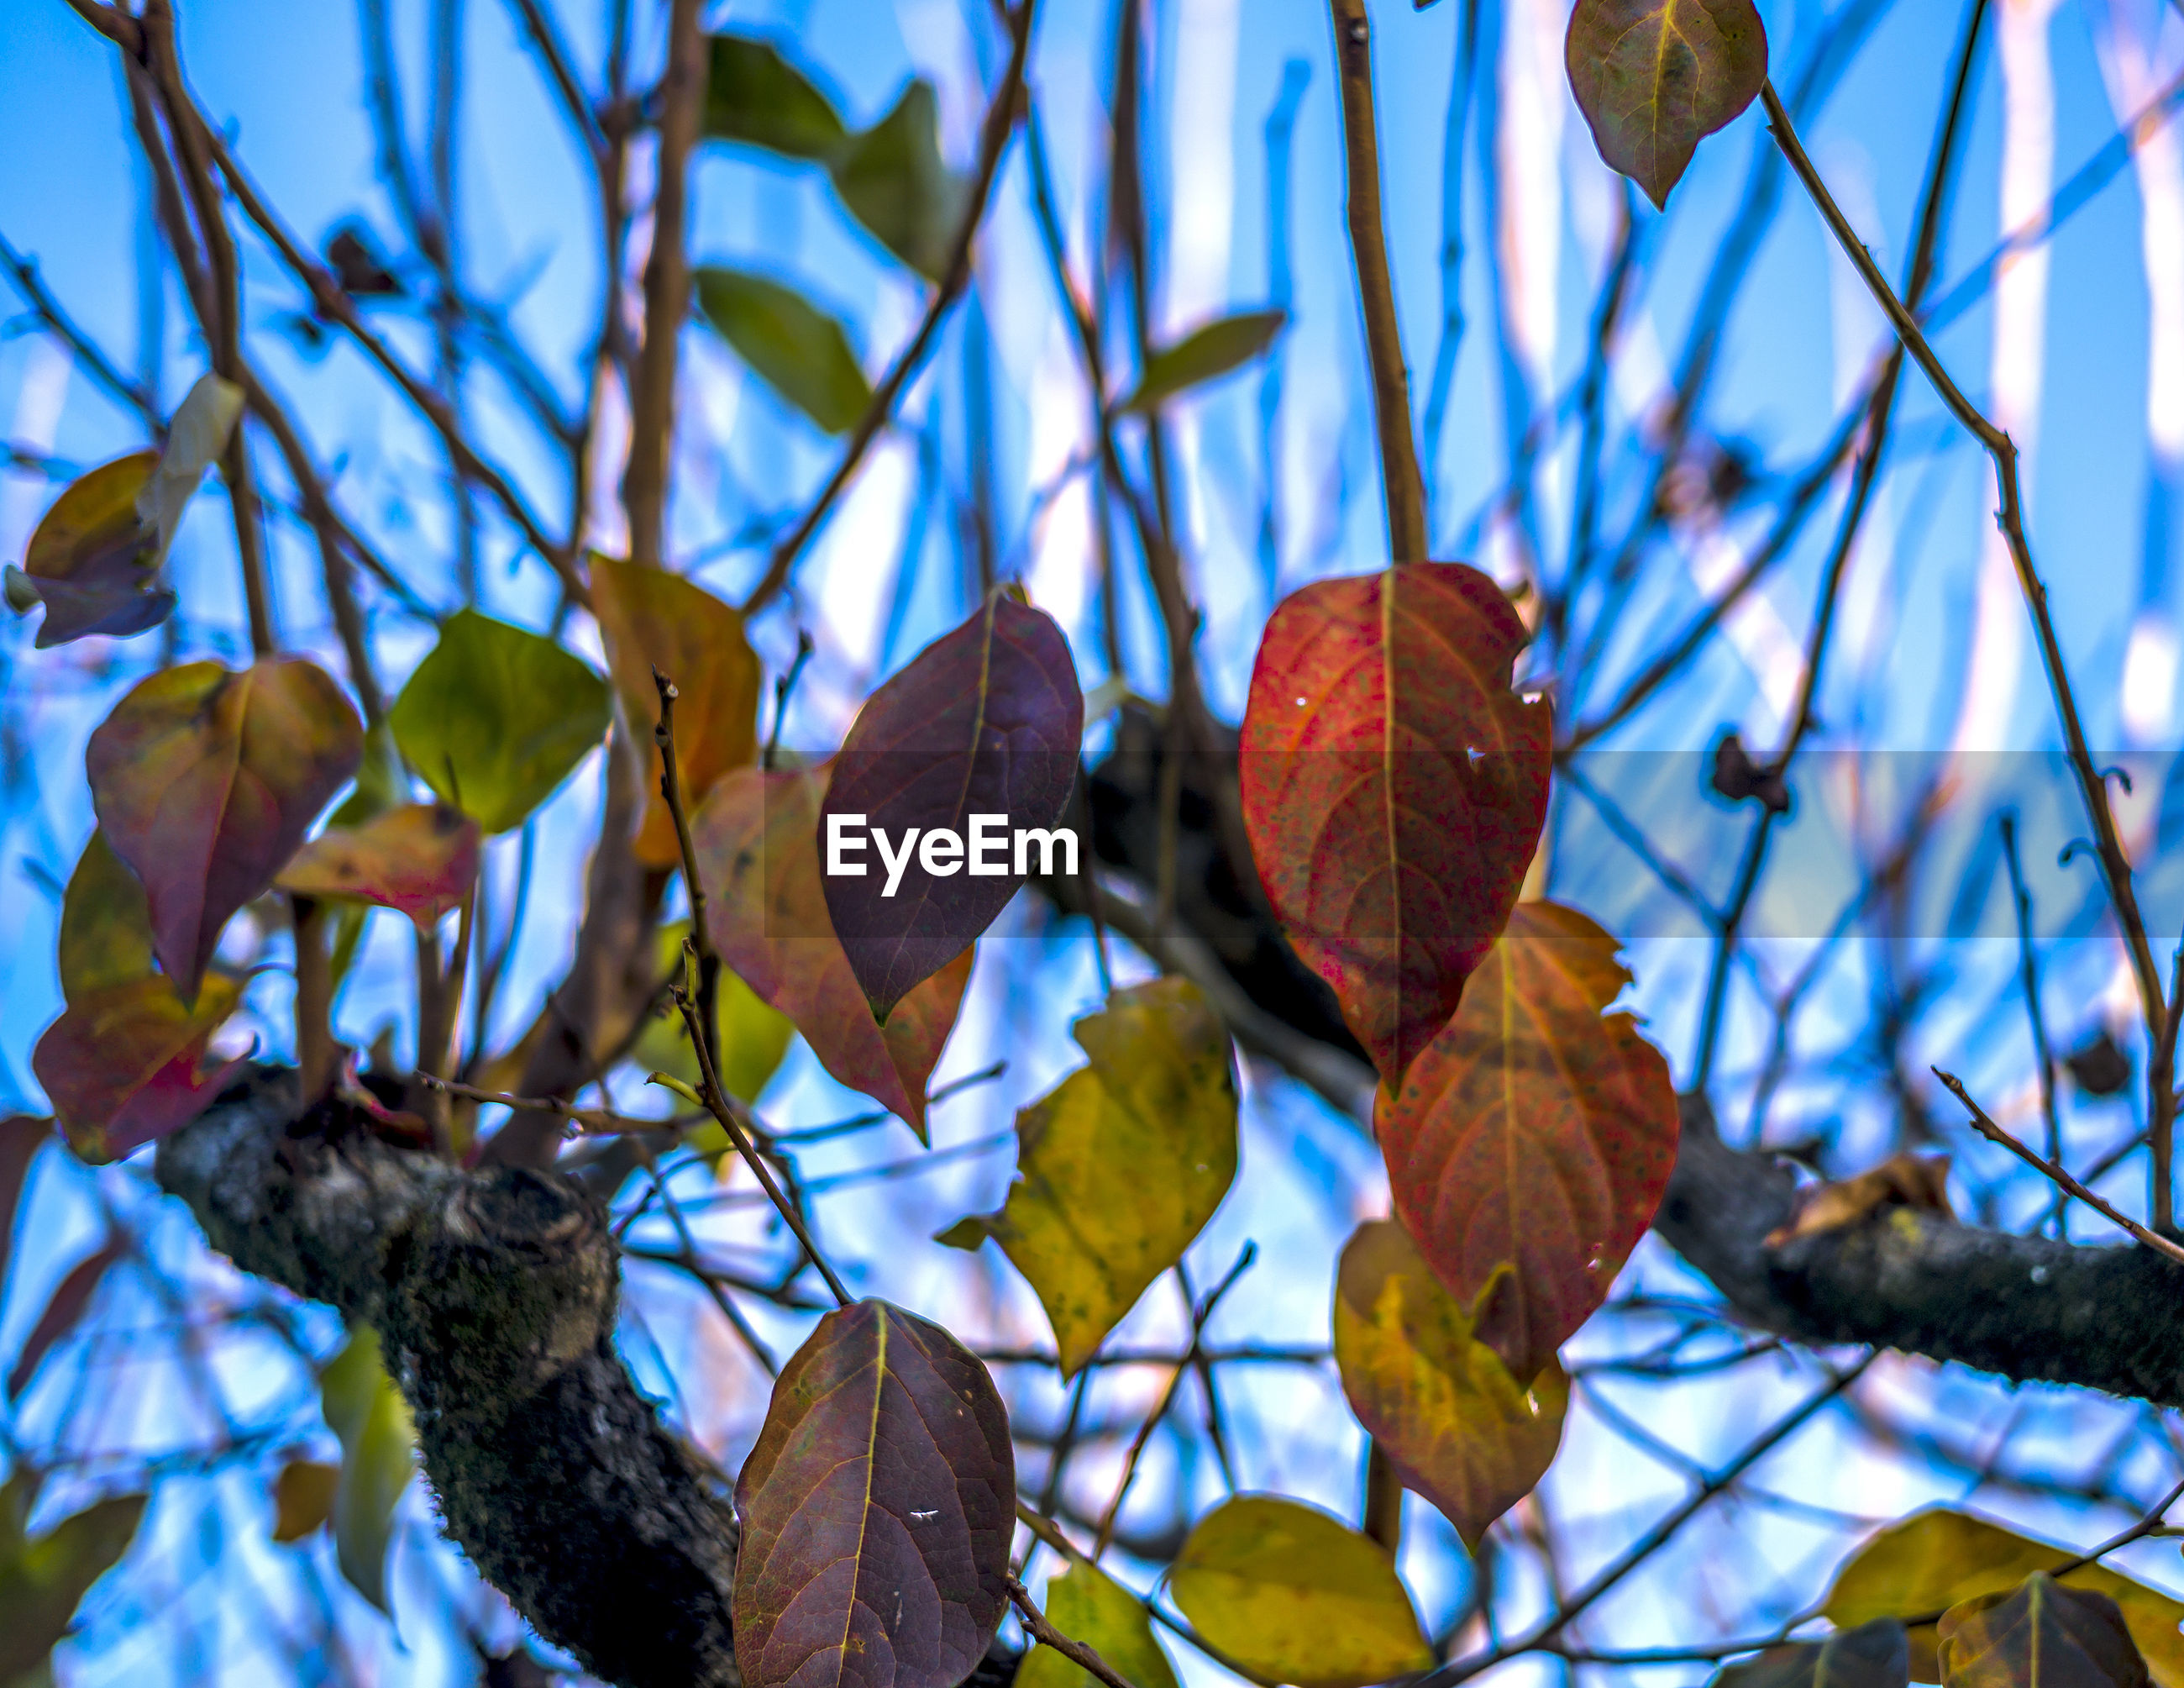 leaf, close-up, focus on foreground, blue, autumn, change, branch, season, nature, leaves, low angle view, day, sky, dry, tree, outdoors, no people, growth, fence, sunlight